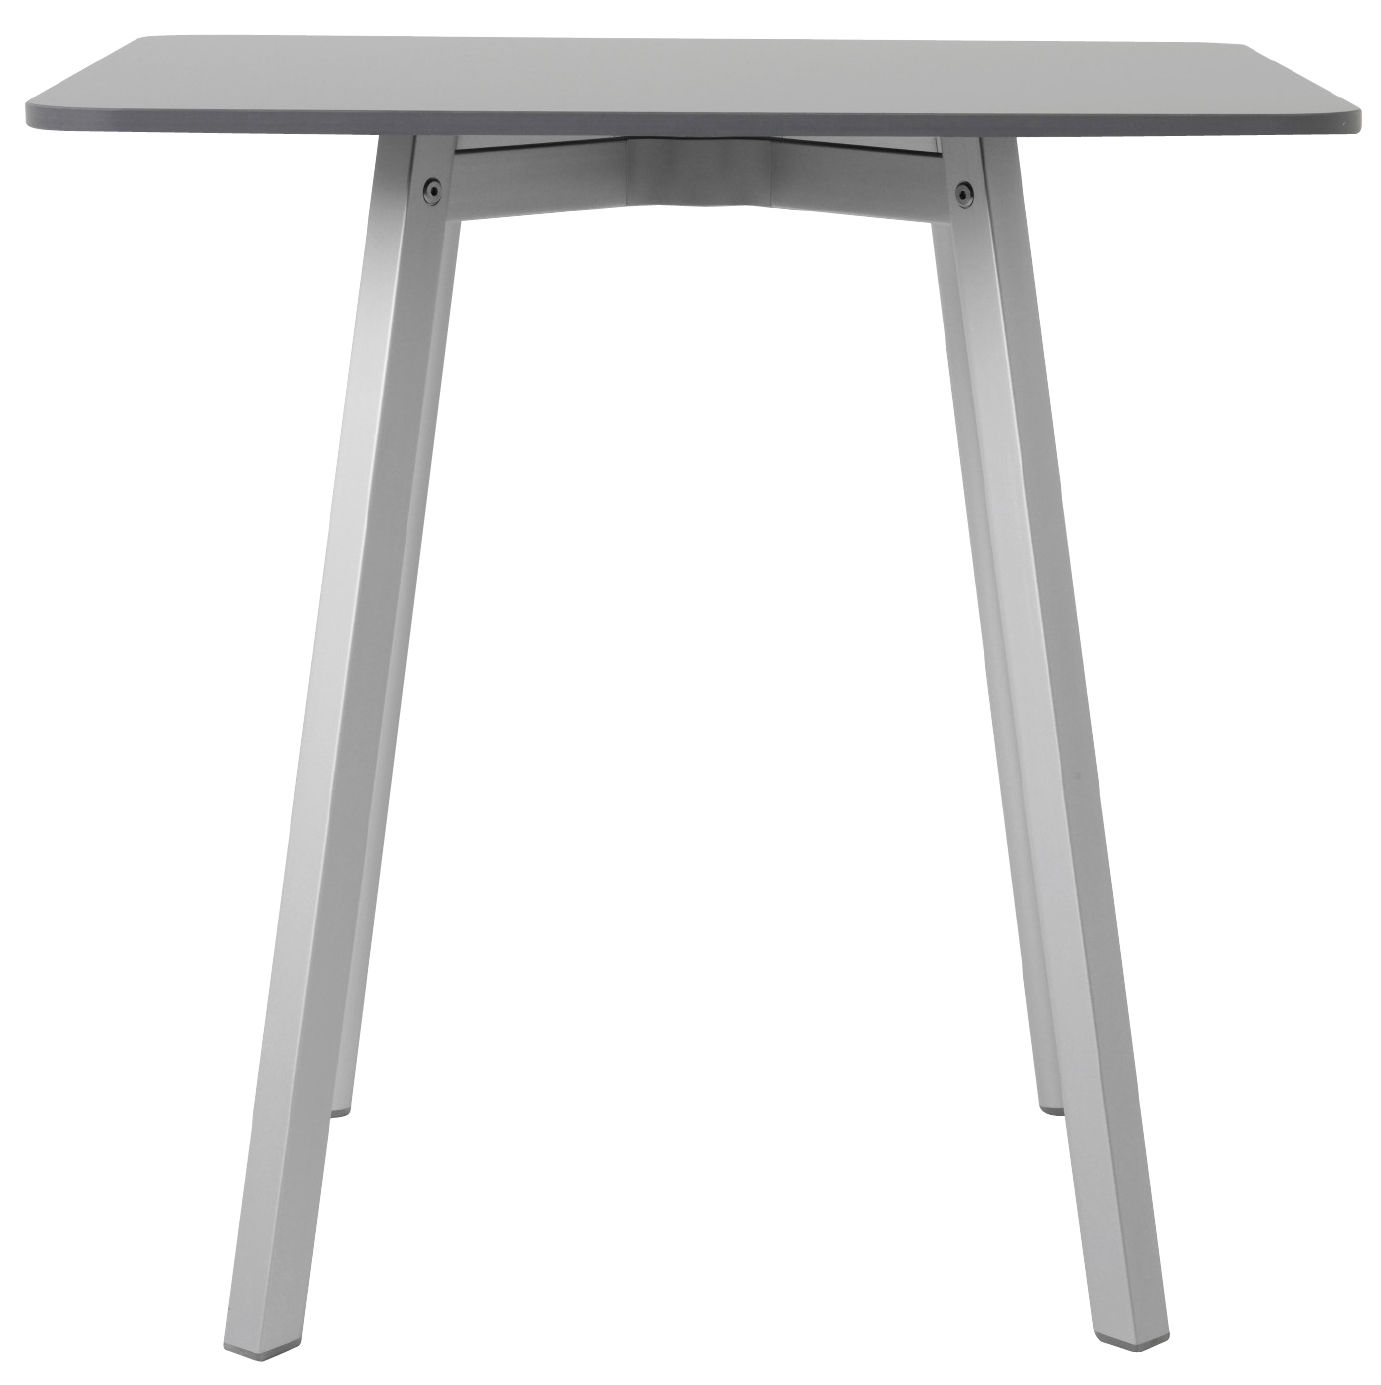 Furniture - Dining Tables - Su Square table - / 80 x 80 cm by Emeco - Grey / Aluminium legs - Aluminium recyclé, HPL